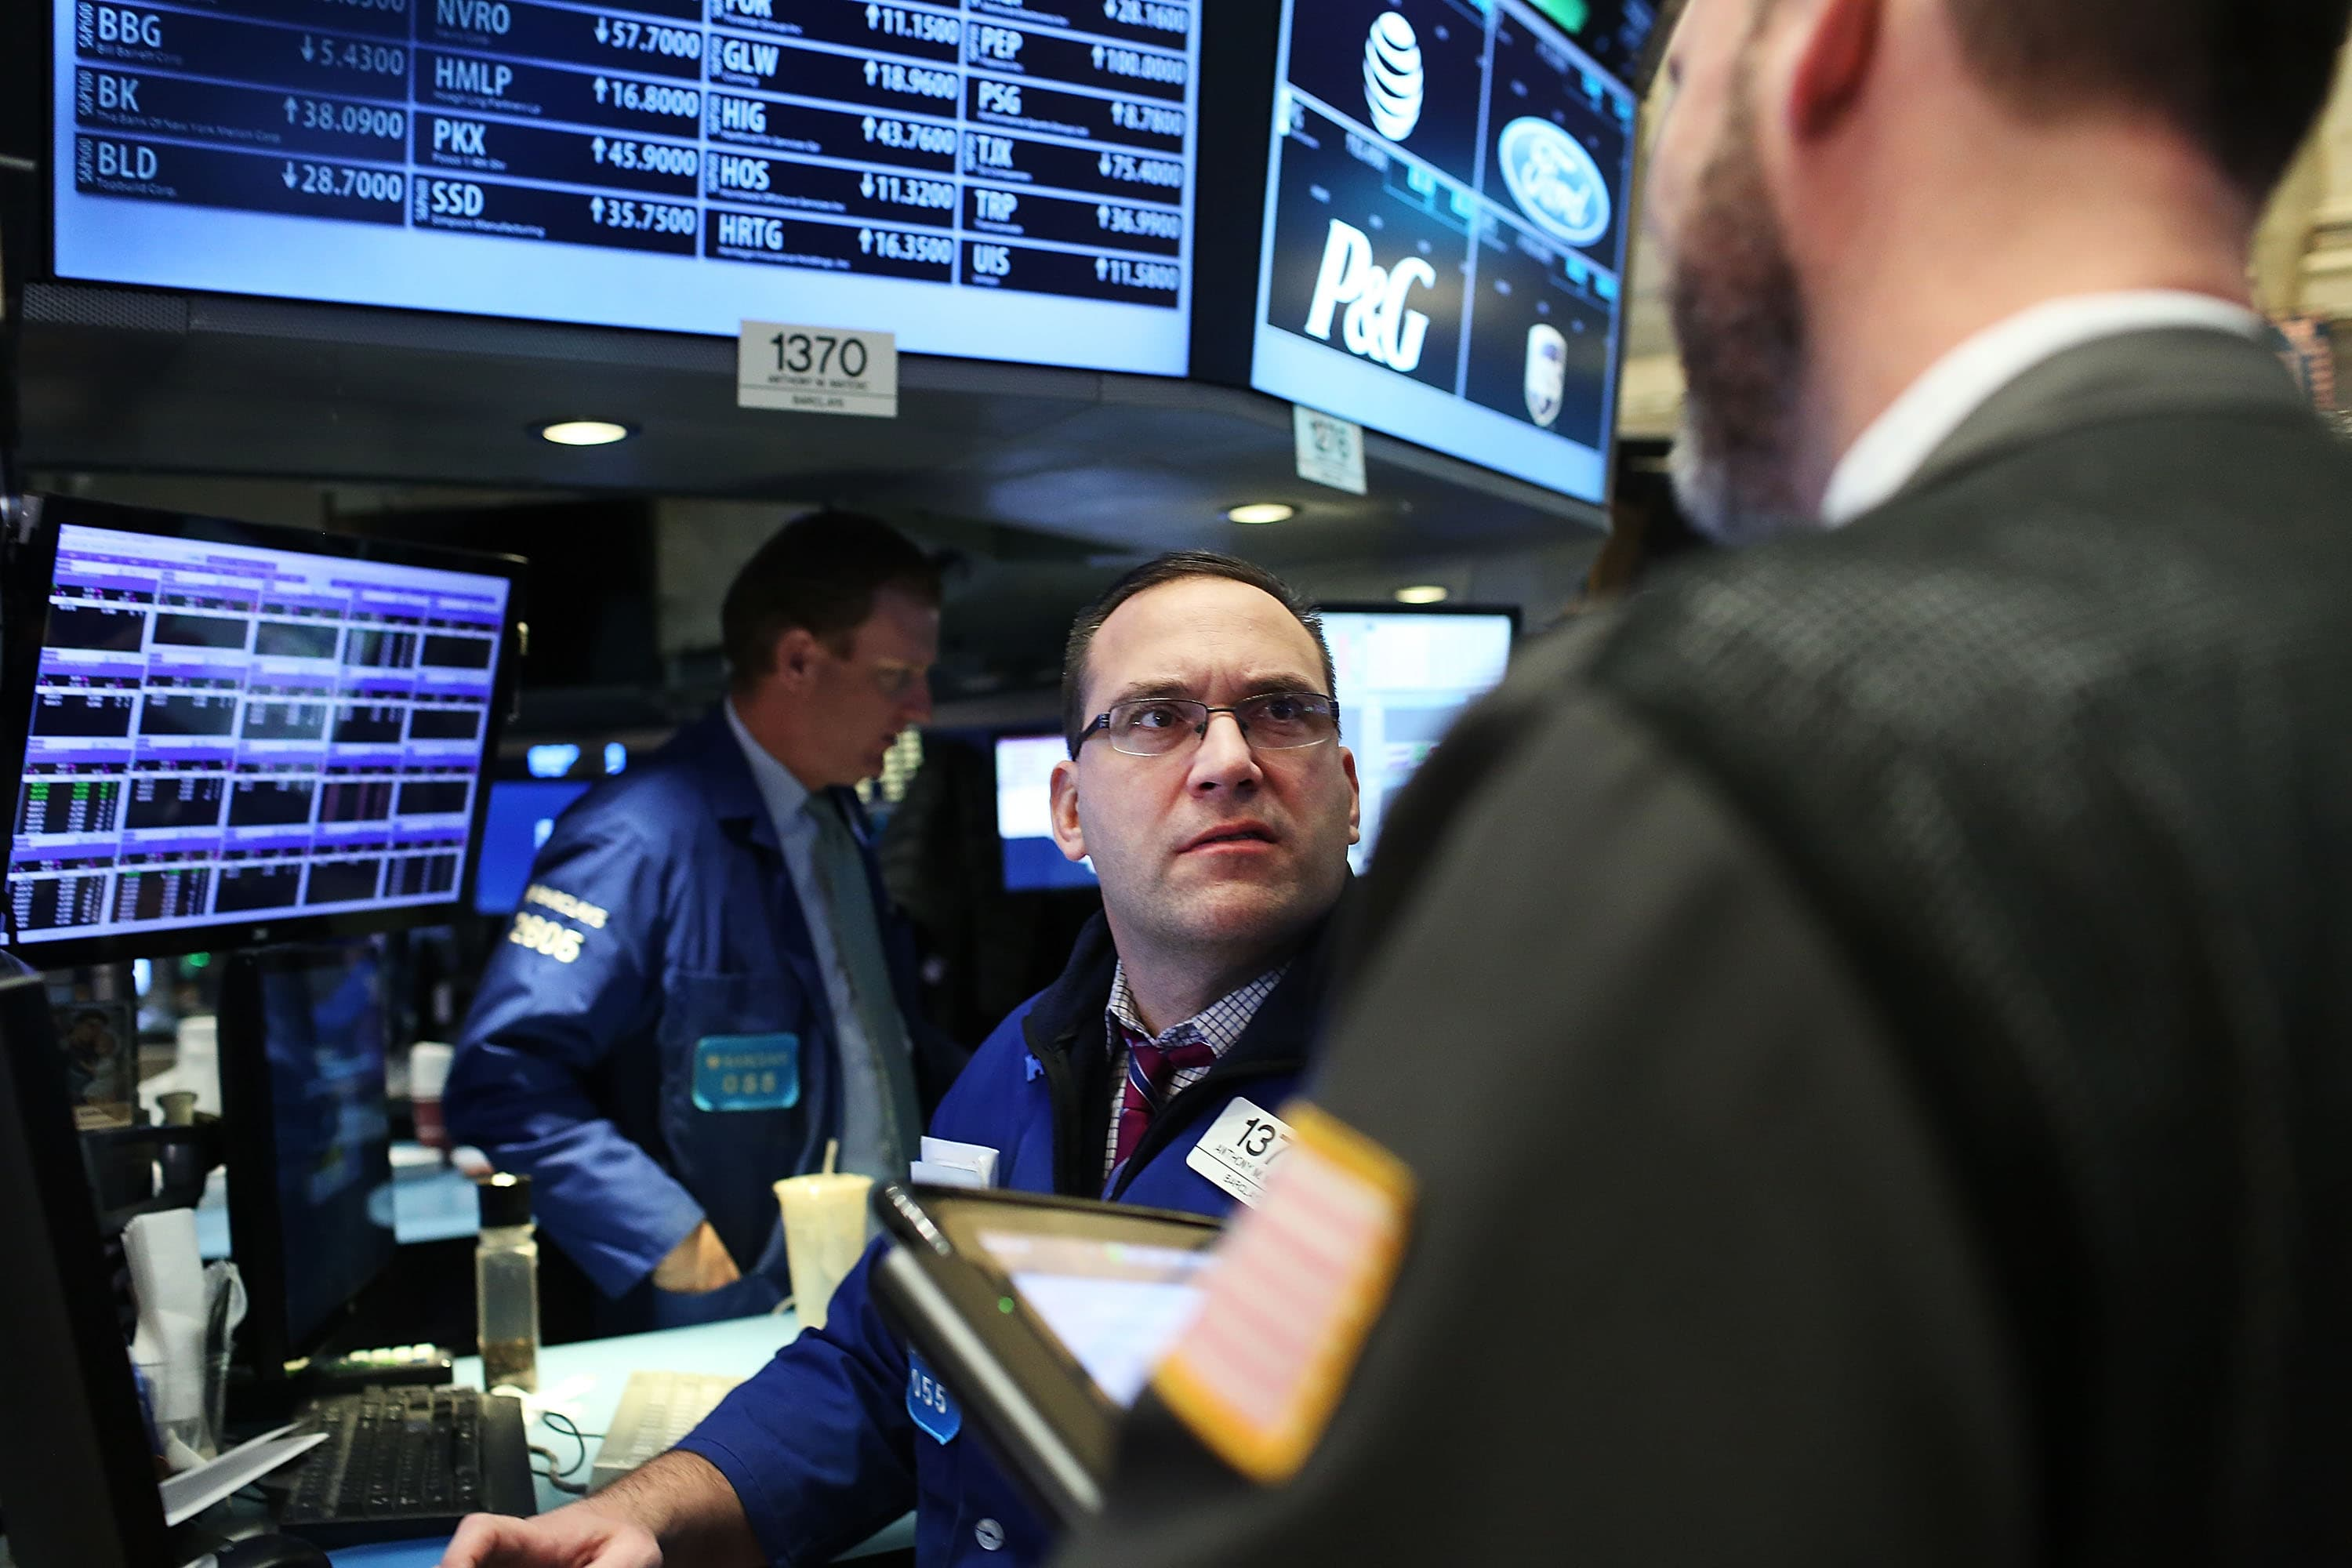 The Dow was perfectly unchanged on Tuesday, a rare occasion on Wall Street